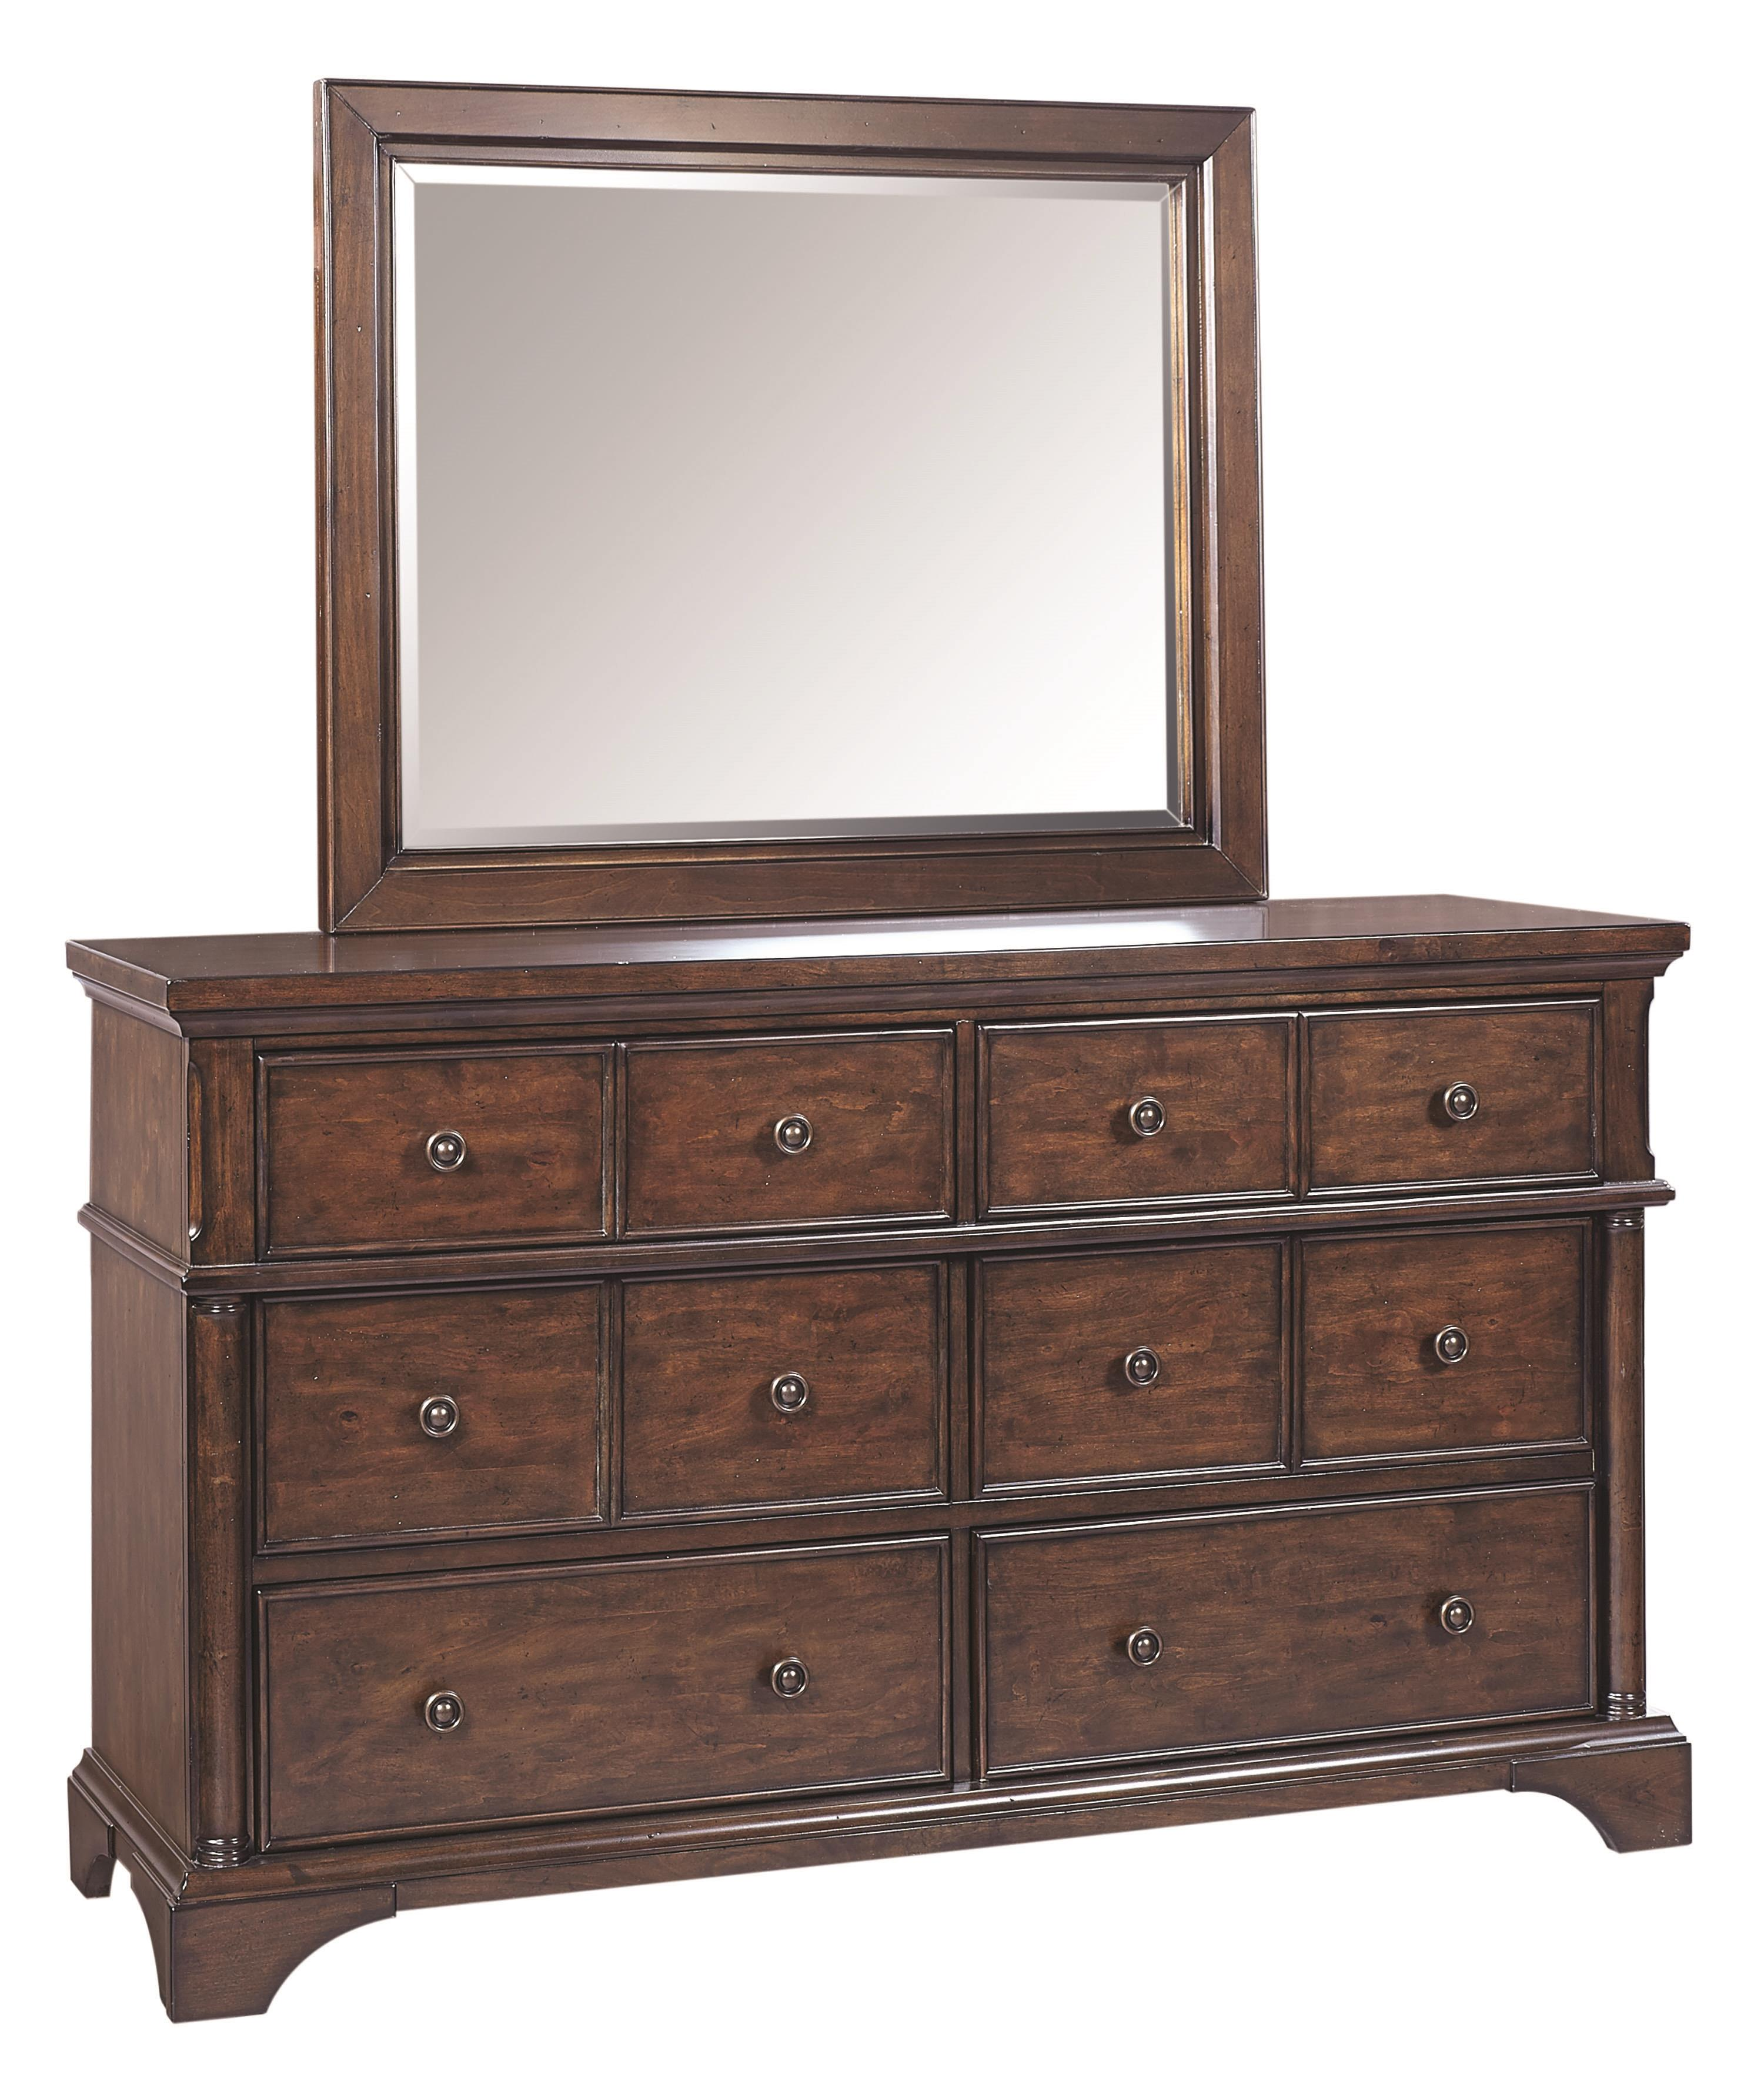 Aspenhome Bancroft Dresser and Mirror - Item Number: I08-453+463